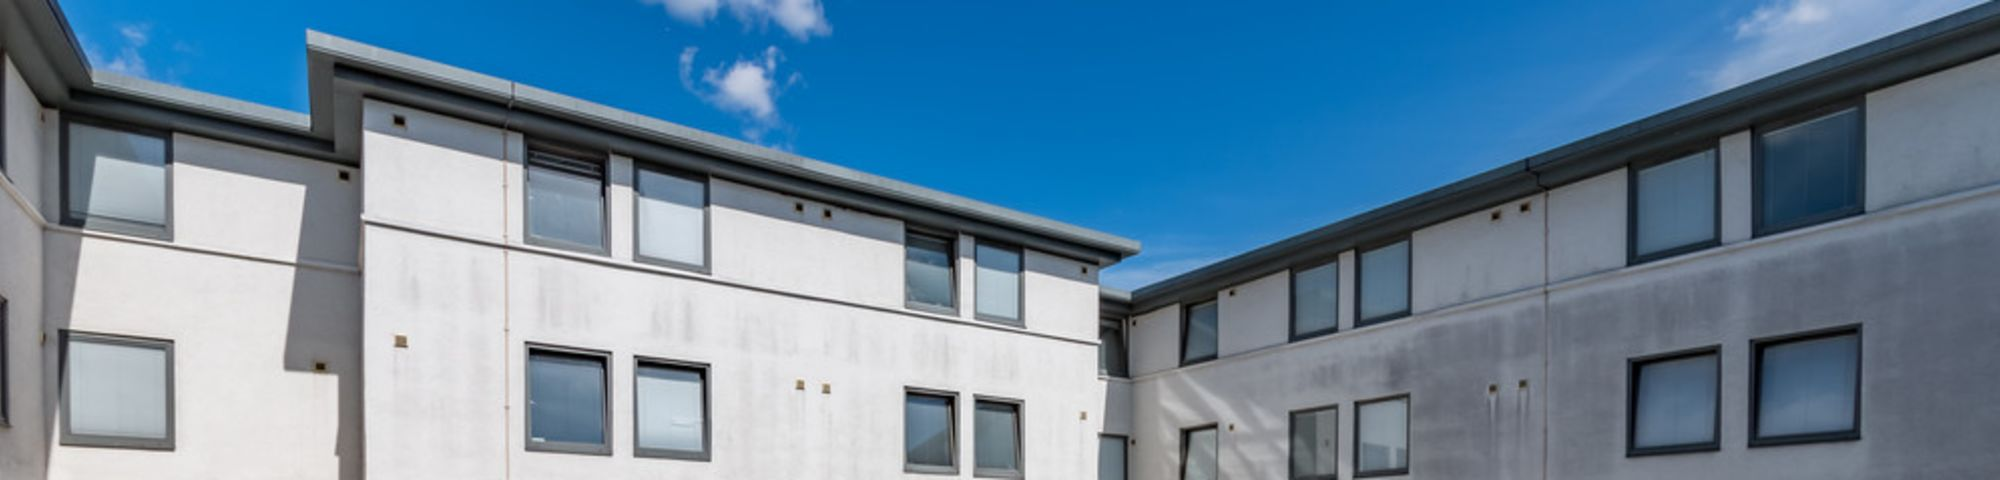 Exterior shot of the courtyard at Don Gratton house